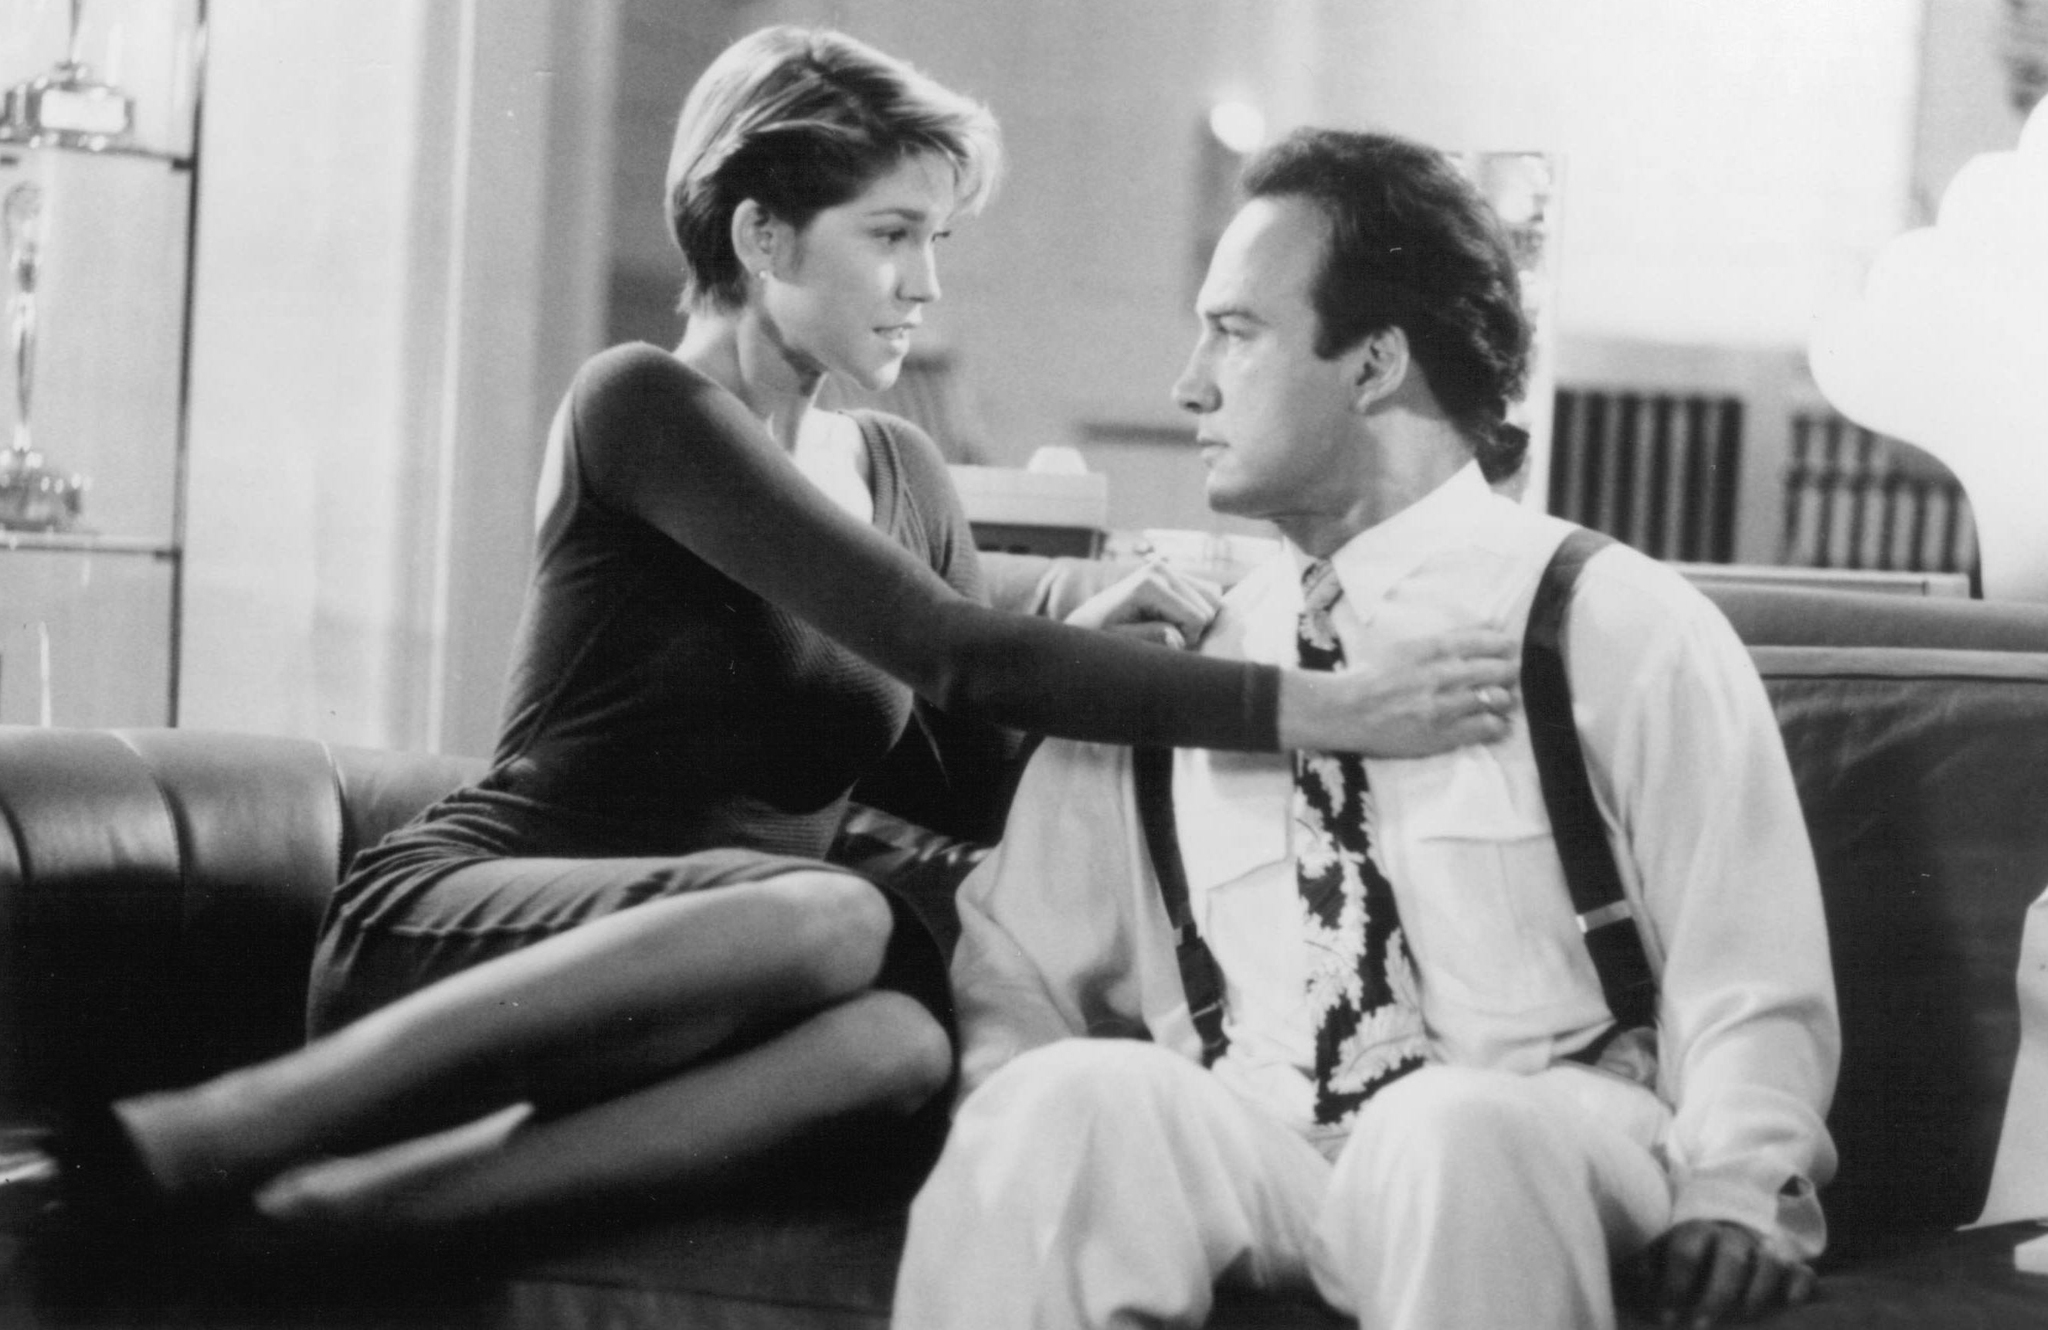 Jim Belushi and Loryn Locklin in Taking Care of Business (1990)